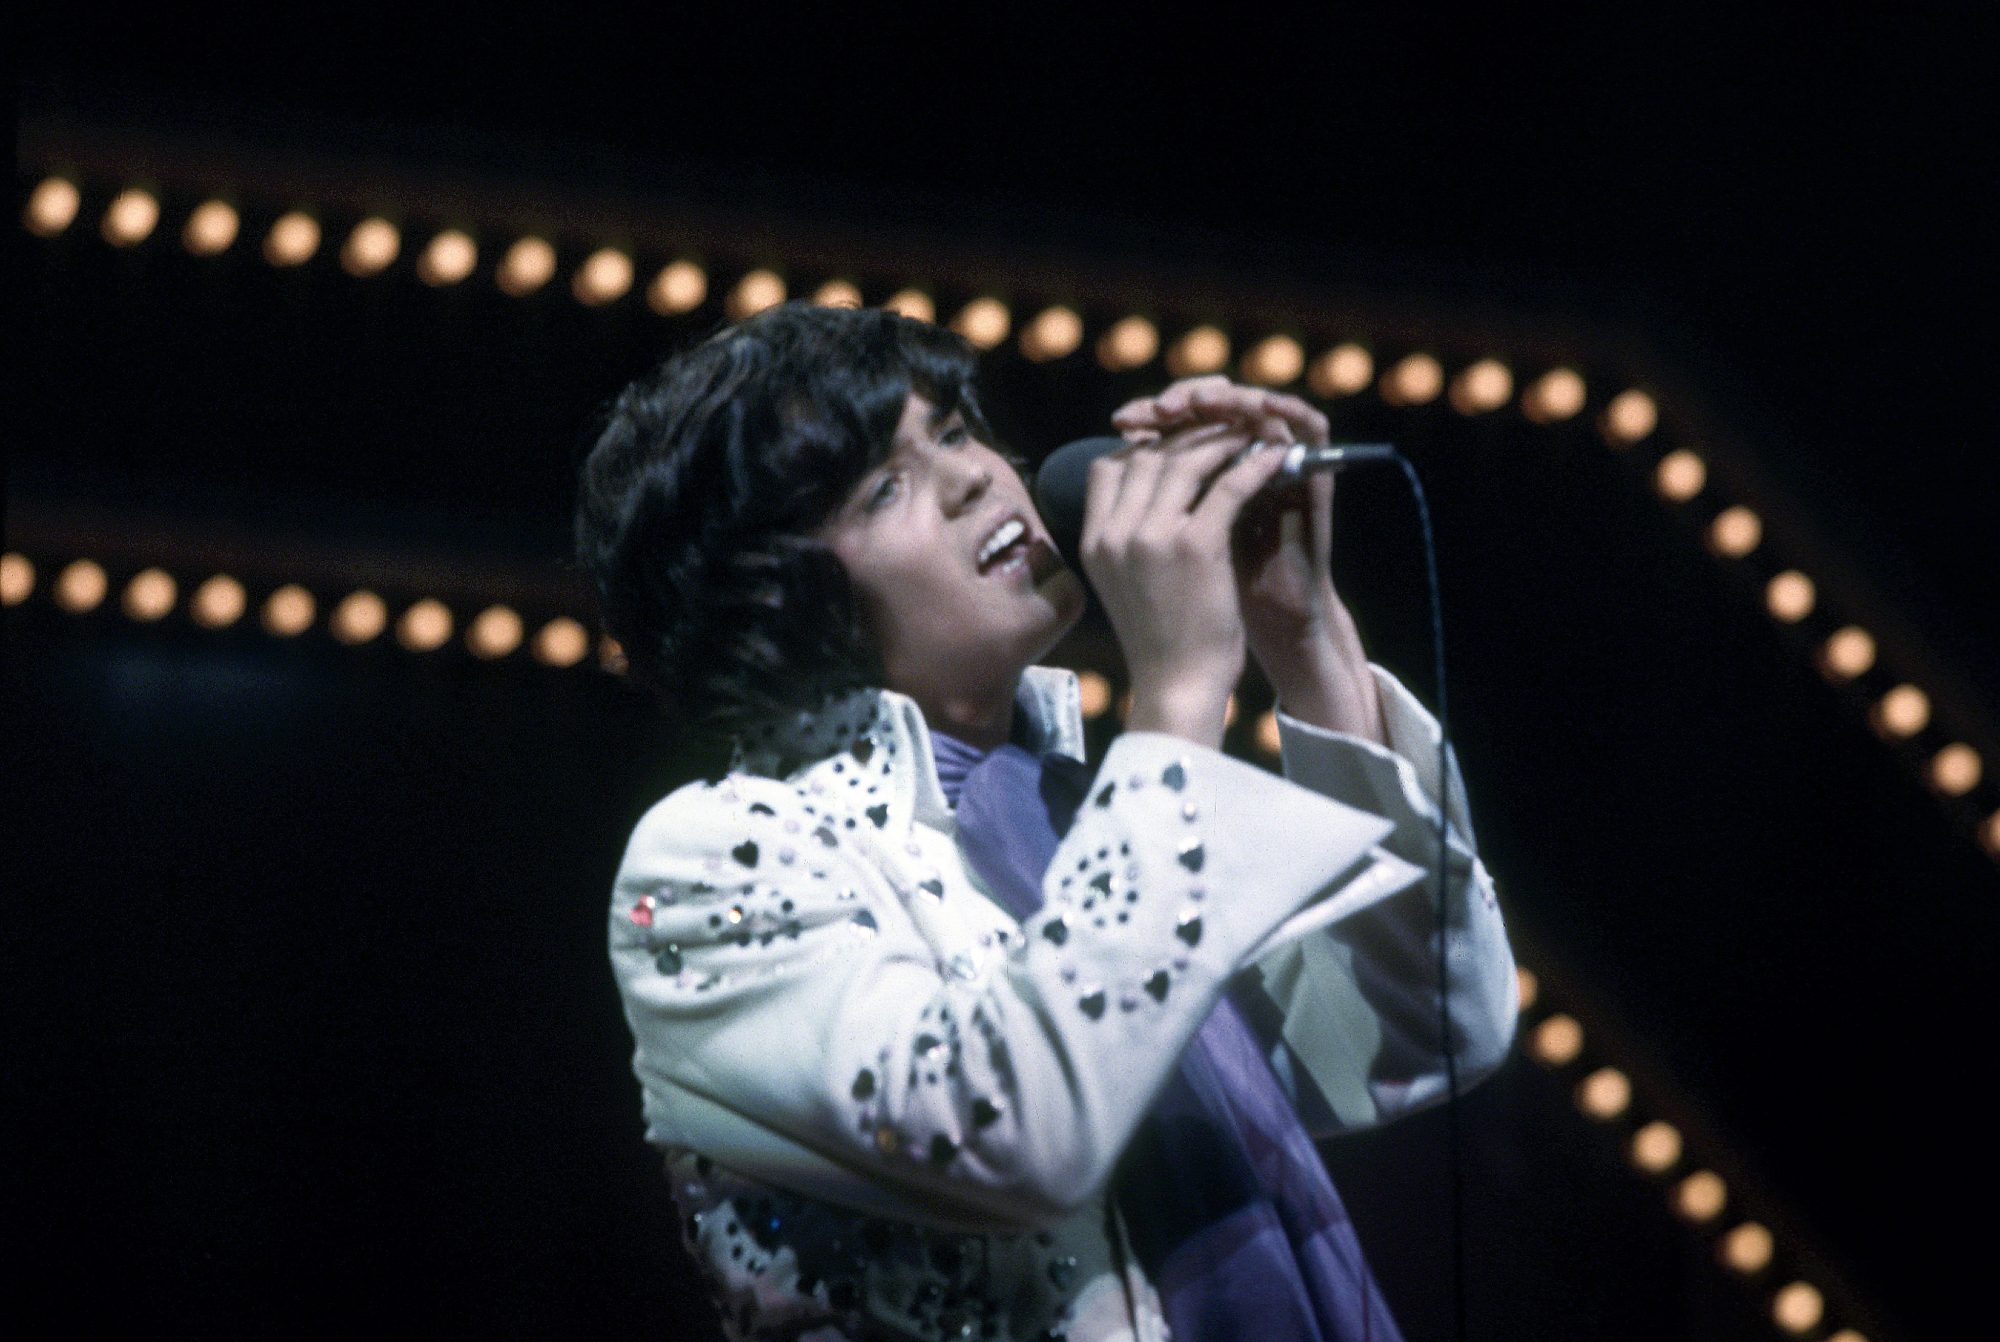 Donny Osmond Performing at the London Palladium